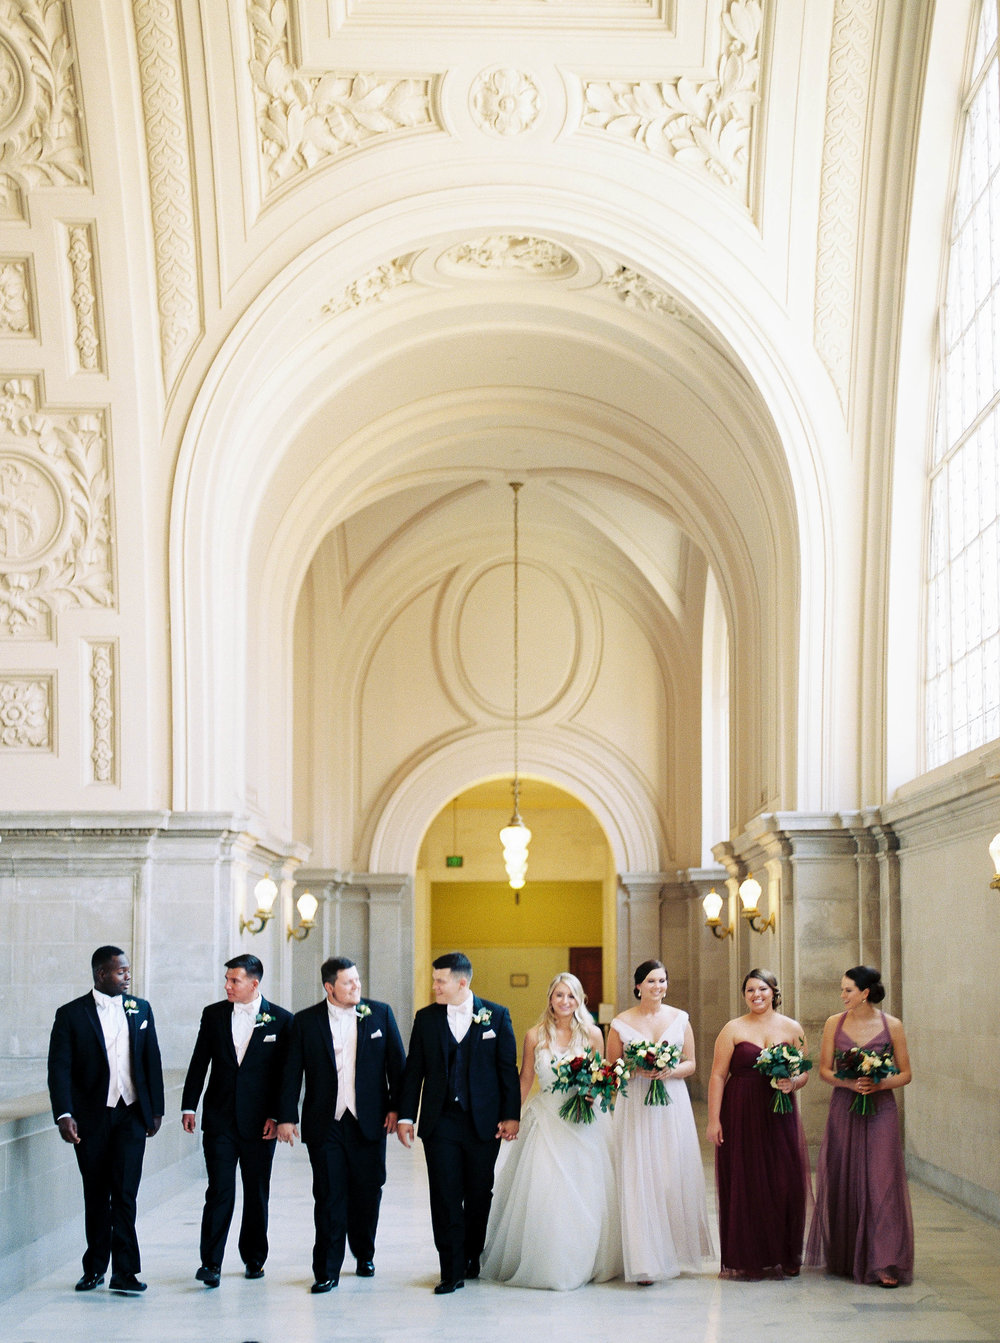 DennisRoyCoronel_Photography_SanFranciscoCityHall_Wedding-47.jpg